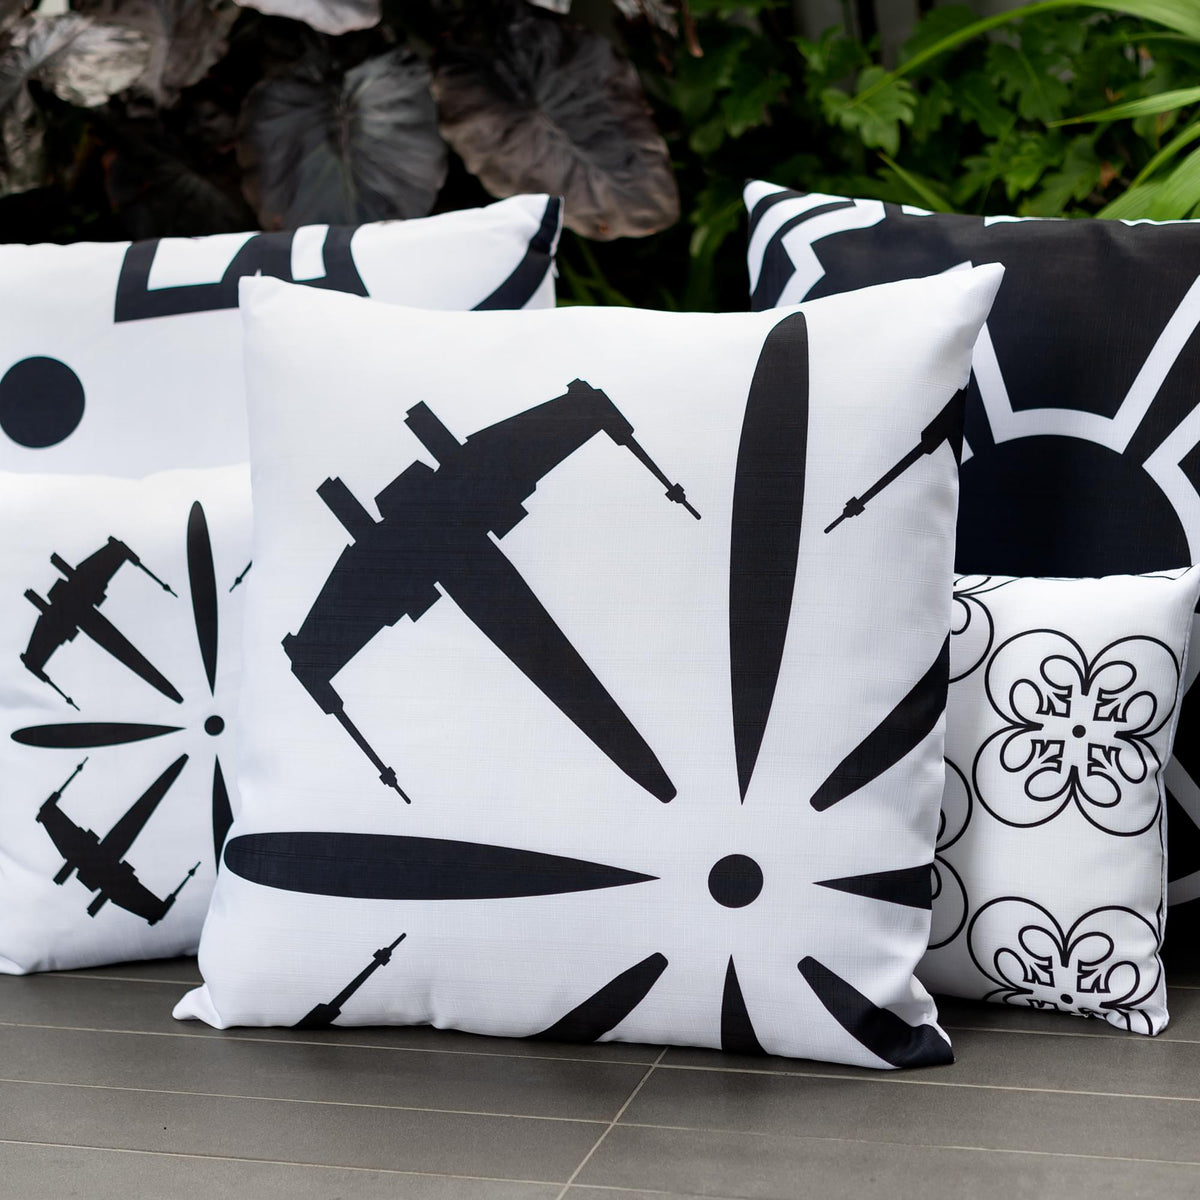 Star Wars White Throw Pillow | Black X-Wing Fighter Design | 25 x 25 Inches